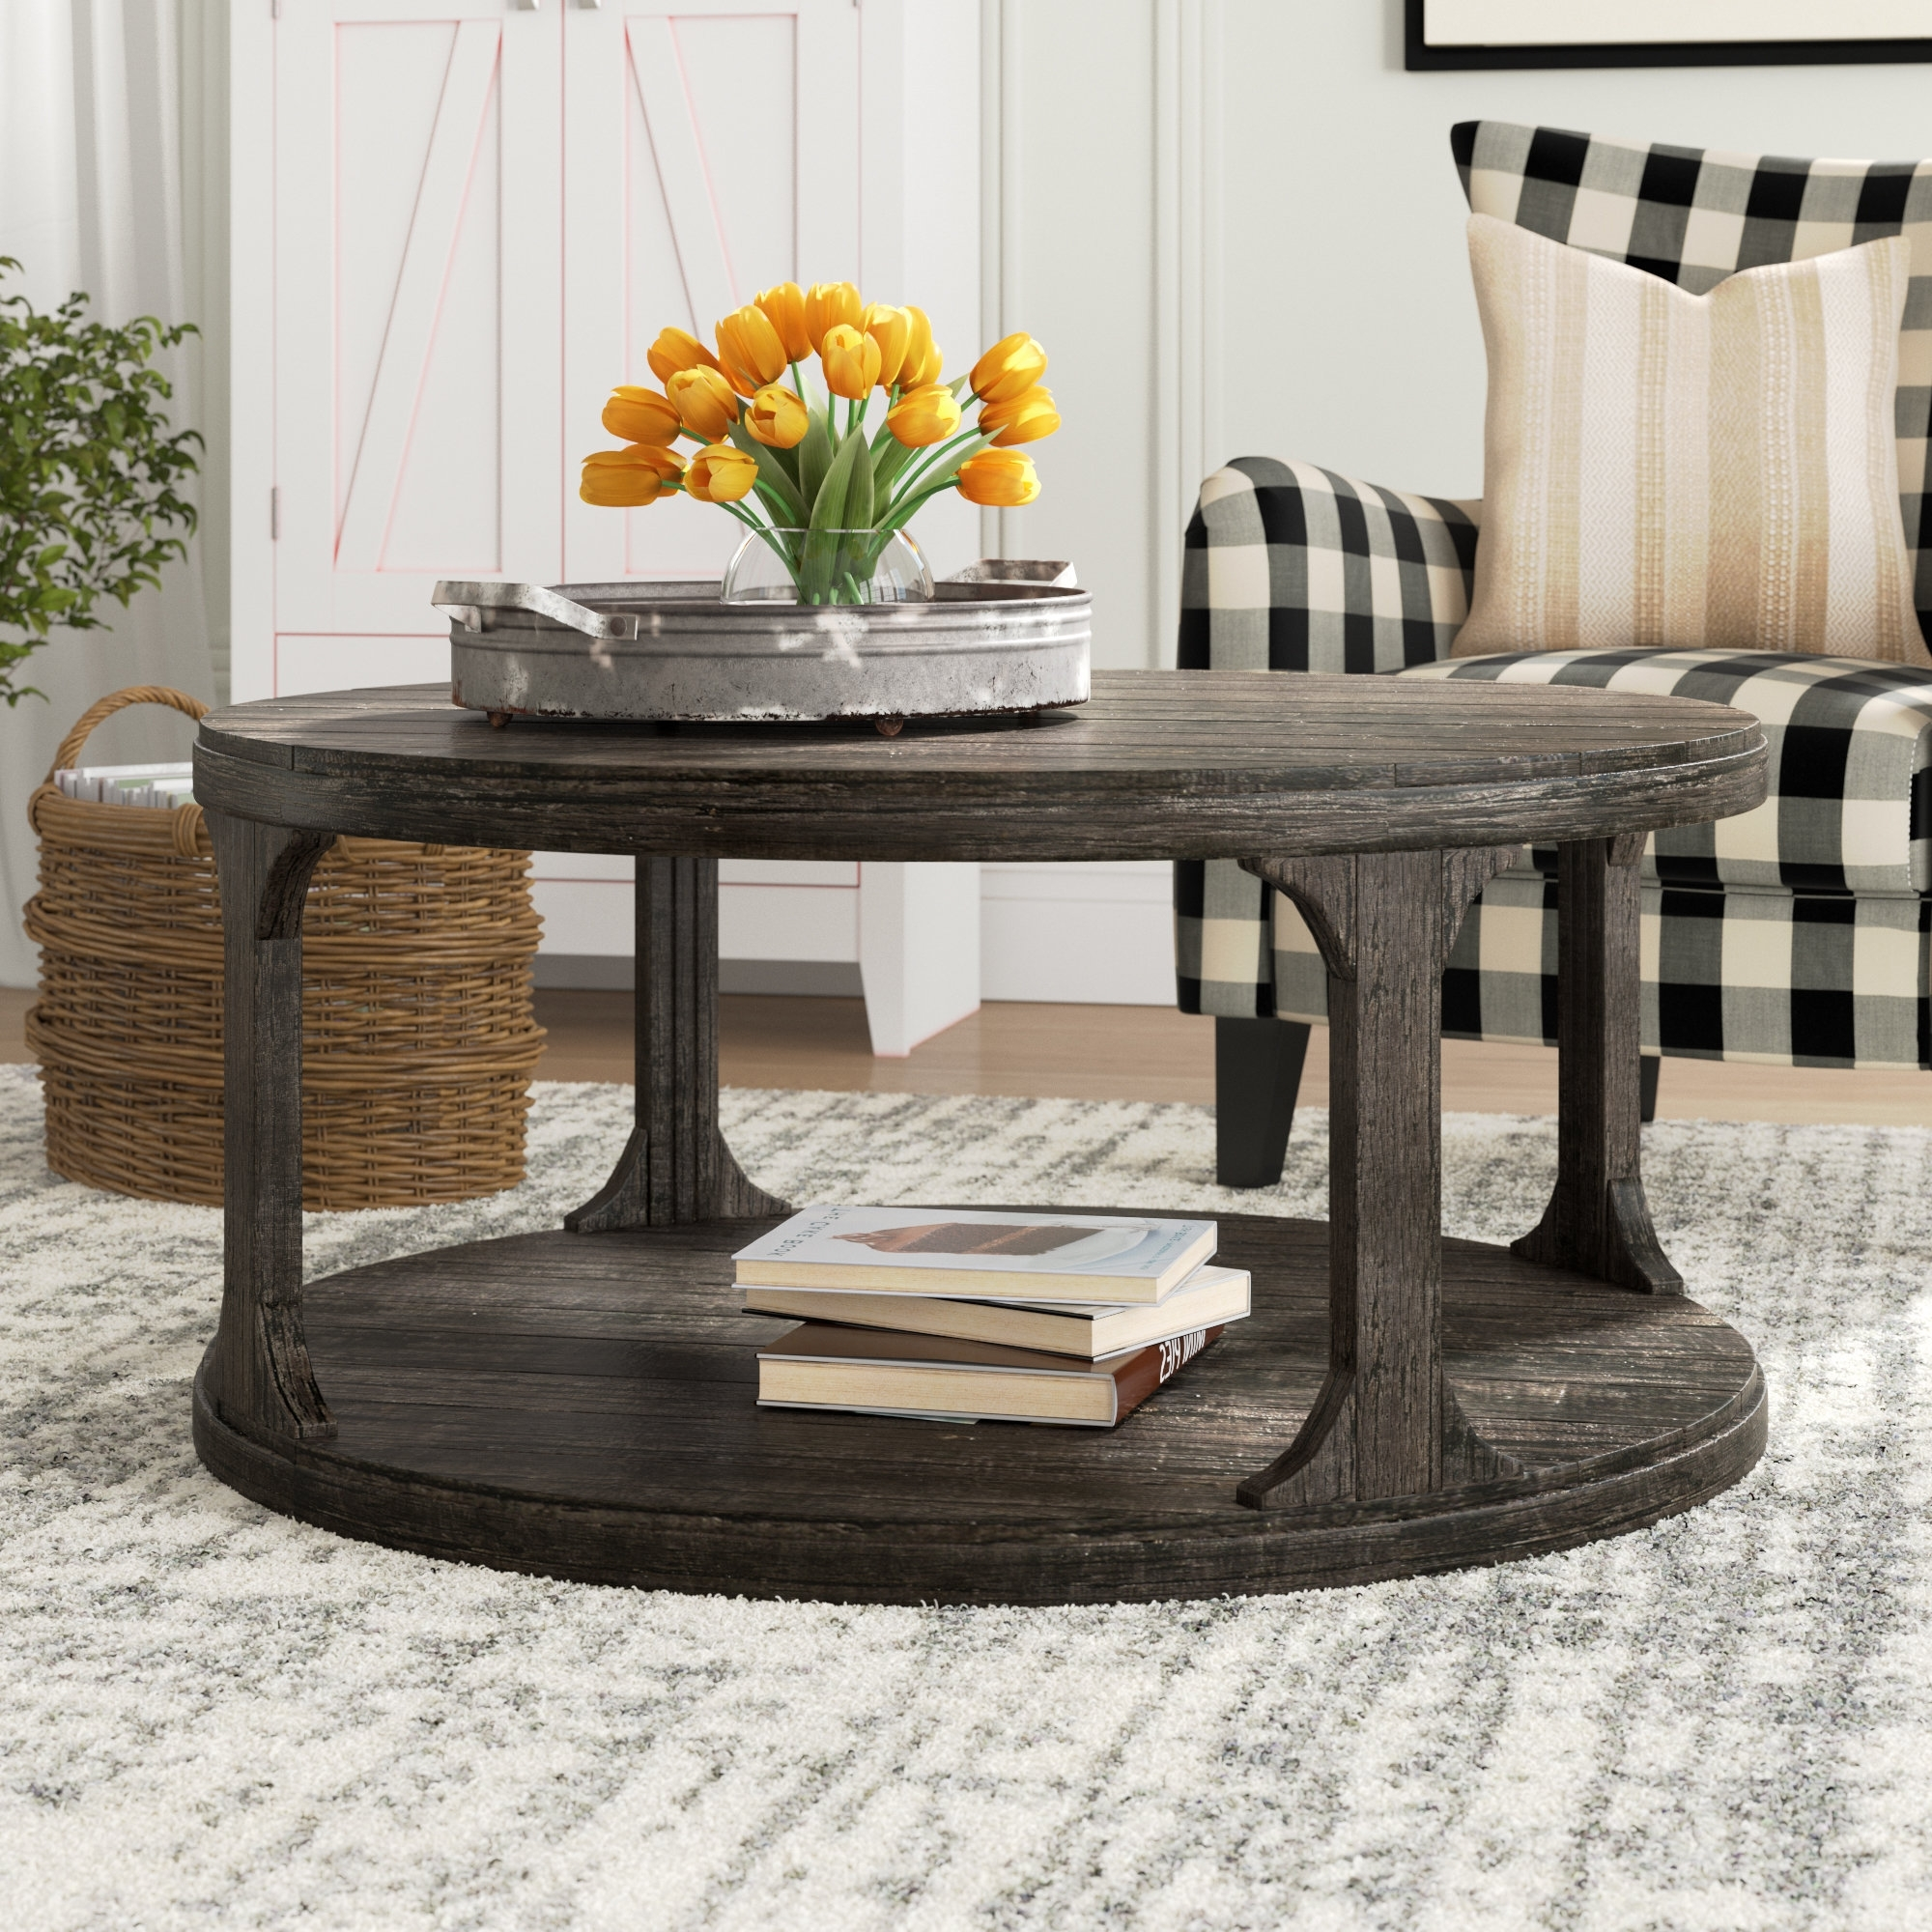 Laurel Foundry Modern Farmhouse Kaitlin Coffee Table (View 15 of 20)